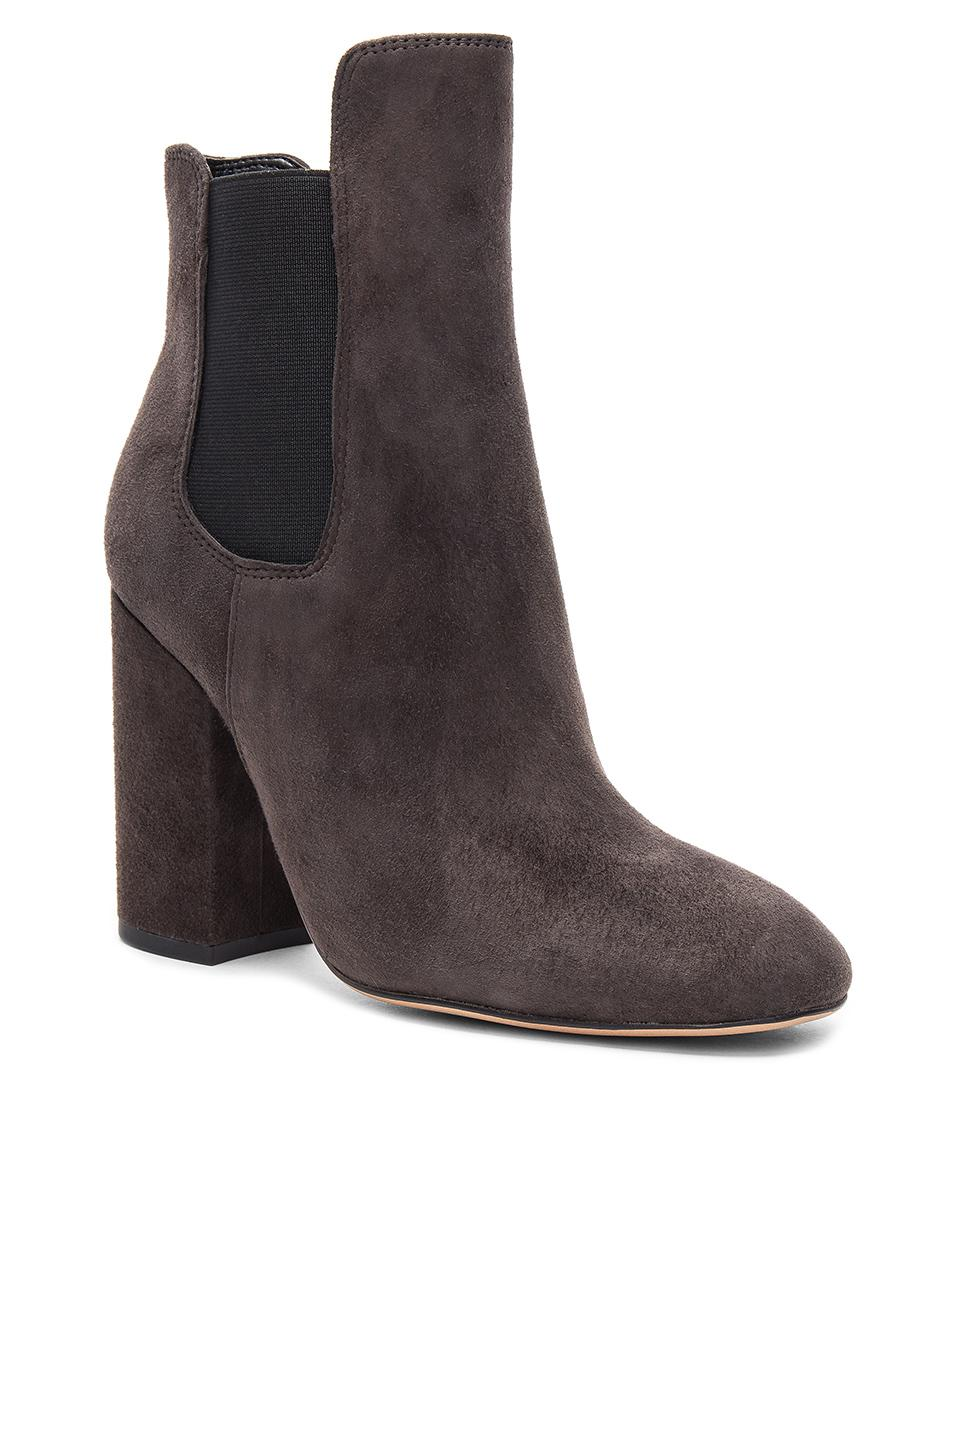 Tony Bianco Suede Avla Bootie in Brown